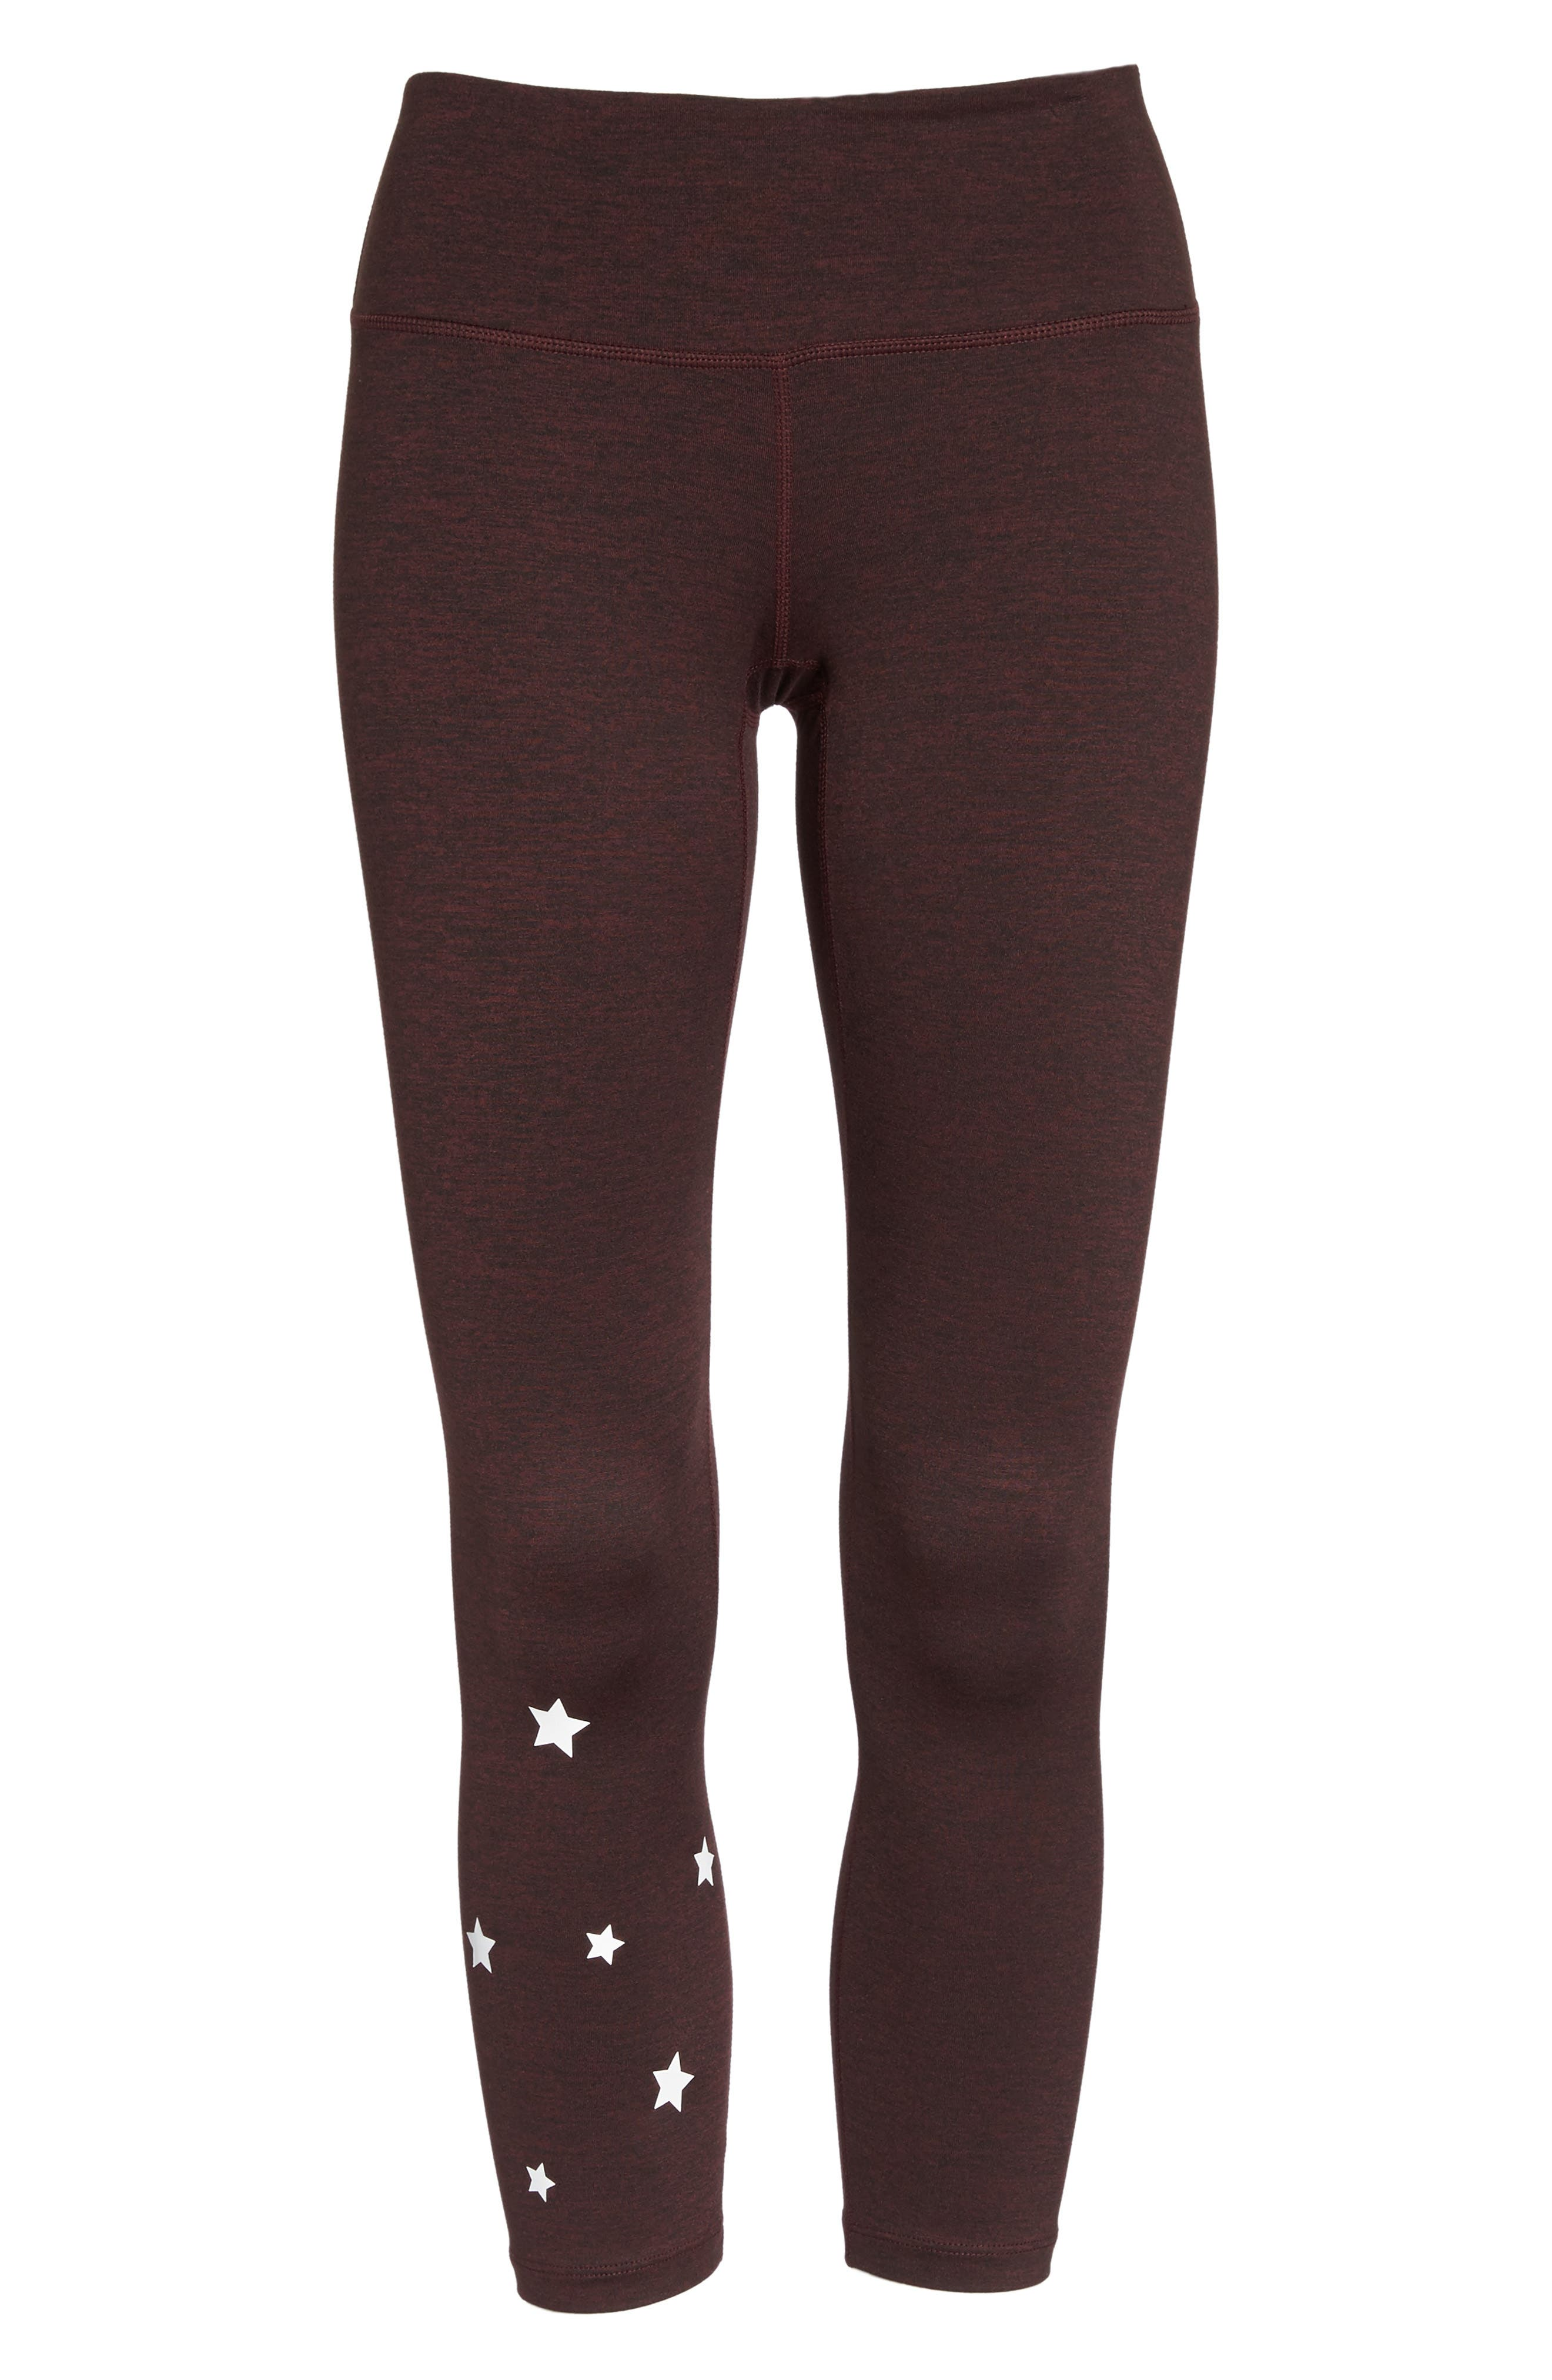 Stars Power Crop Leggings,                             Alternate thumbnail 7, color,                             602